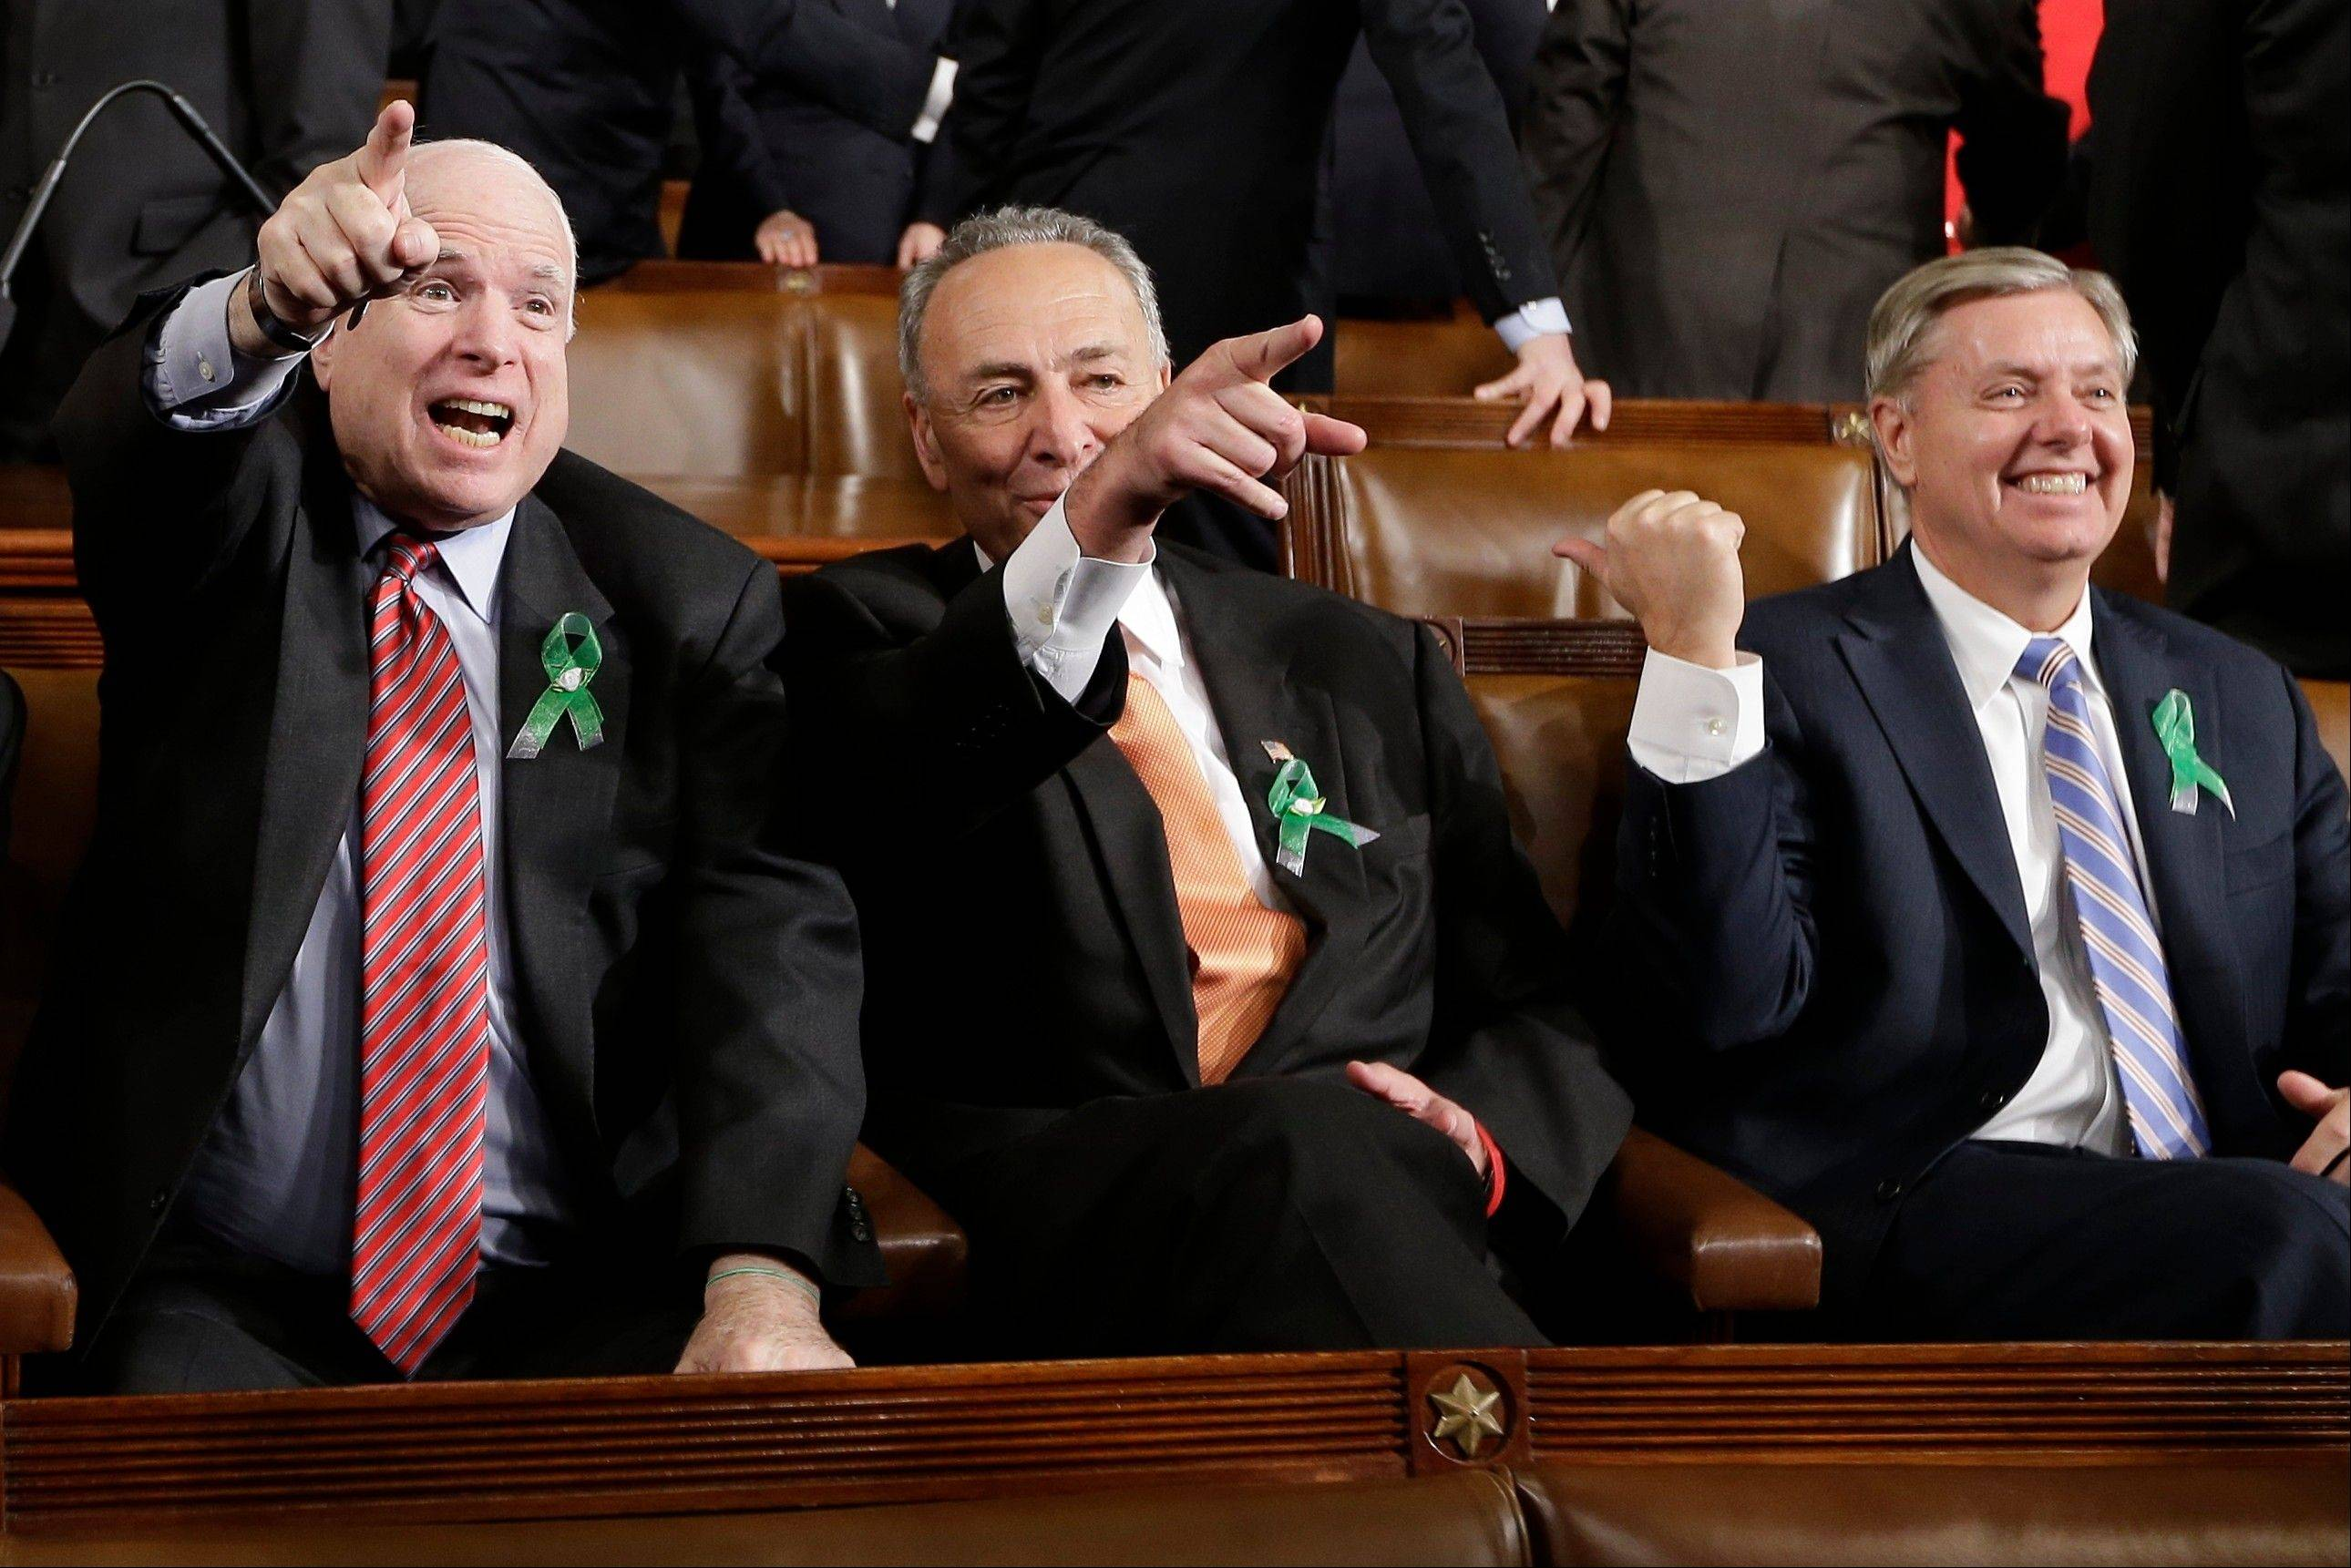 From left, Sen. John McCain, a Republican, Sen. Charles Schumer, a Democrat, and Sen. Lindsey Graham, a Republican, wear green ribbons on their lapels as they wait for President Barack Obama's State of the Union address Tuesday. The green ribbons that dotted the lapels of Democrats and Republicans were in honor of the 26 students and educators killed at a Connecticut elementary school in December.